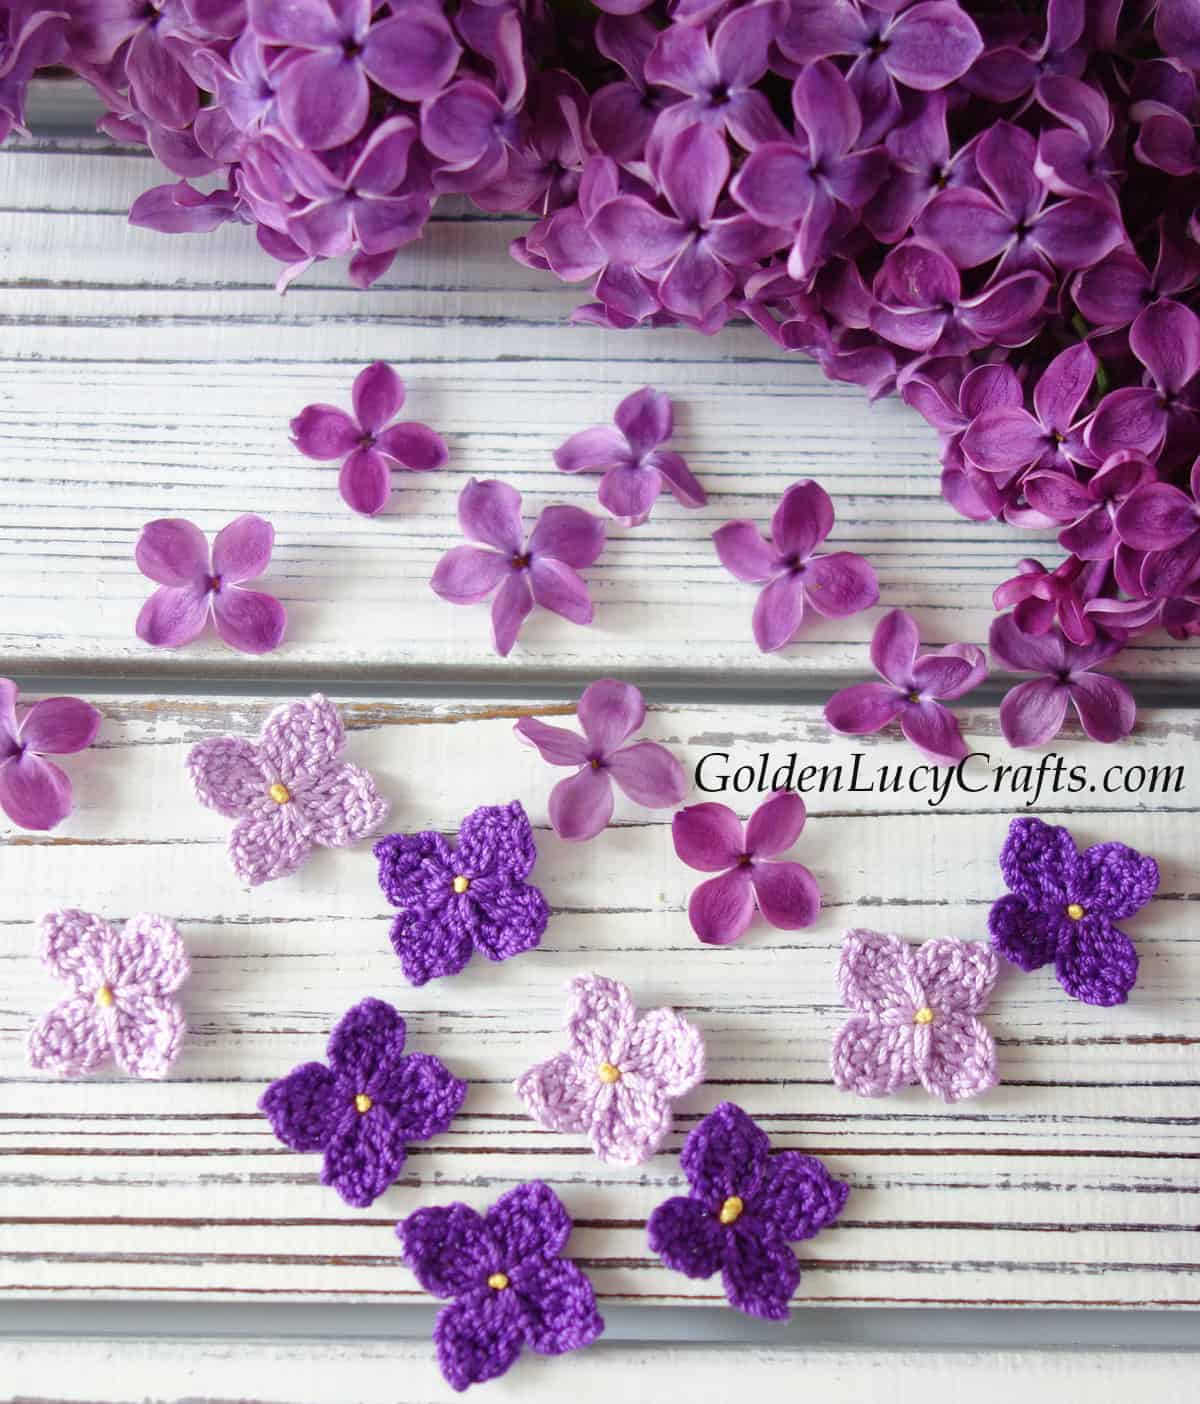 Crochet lilac and real lilac flowers.